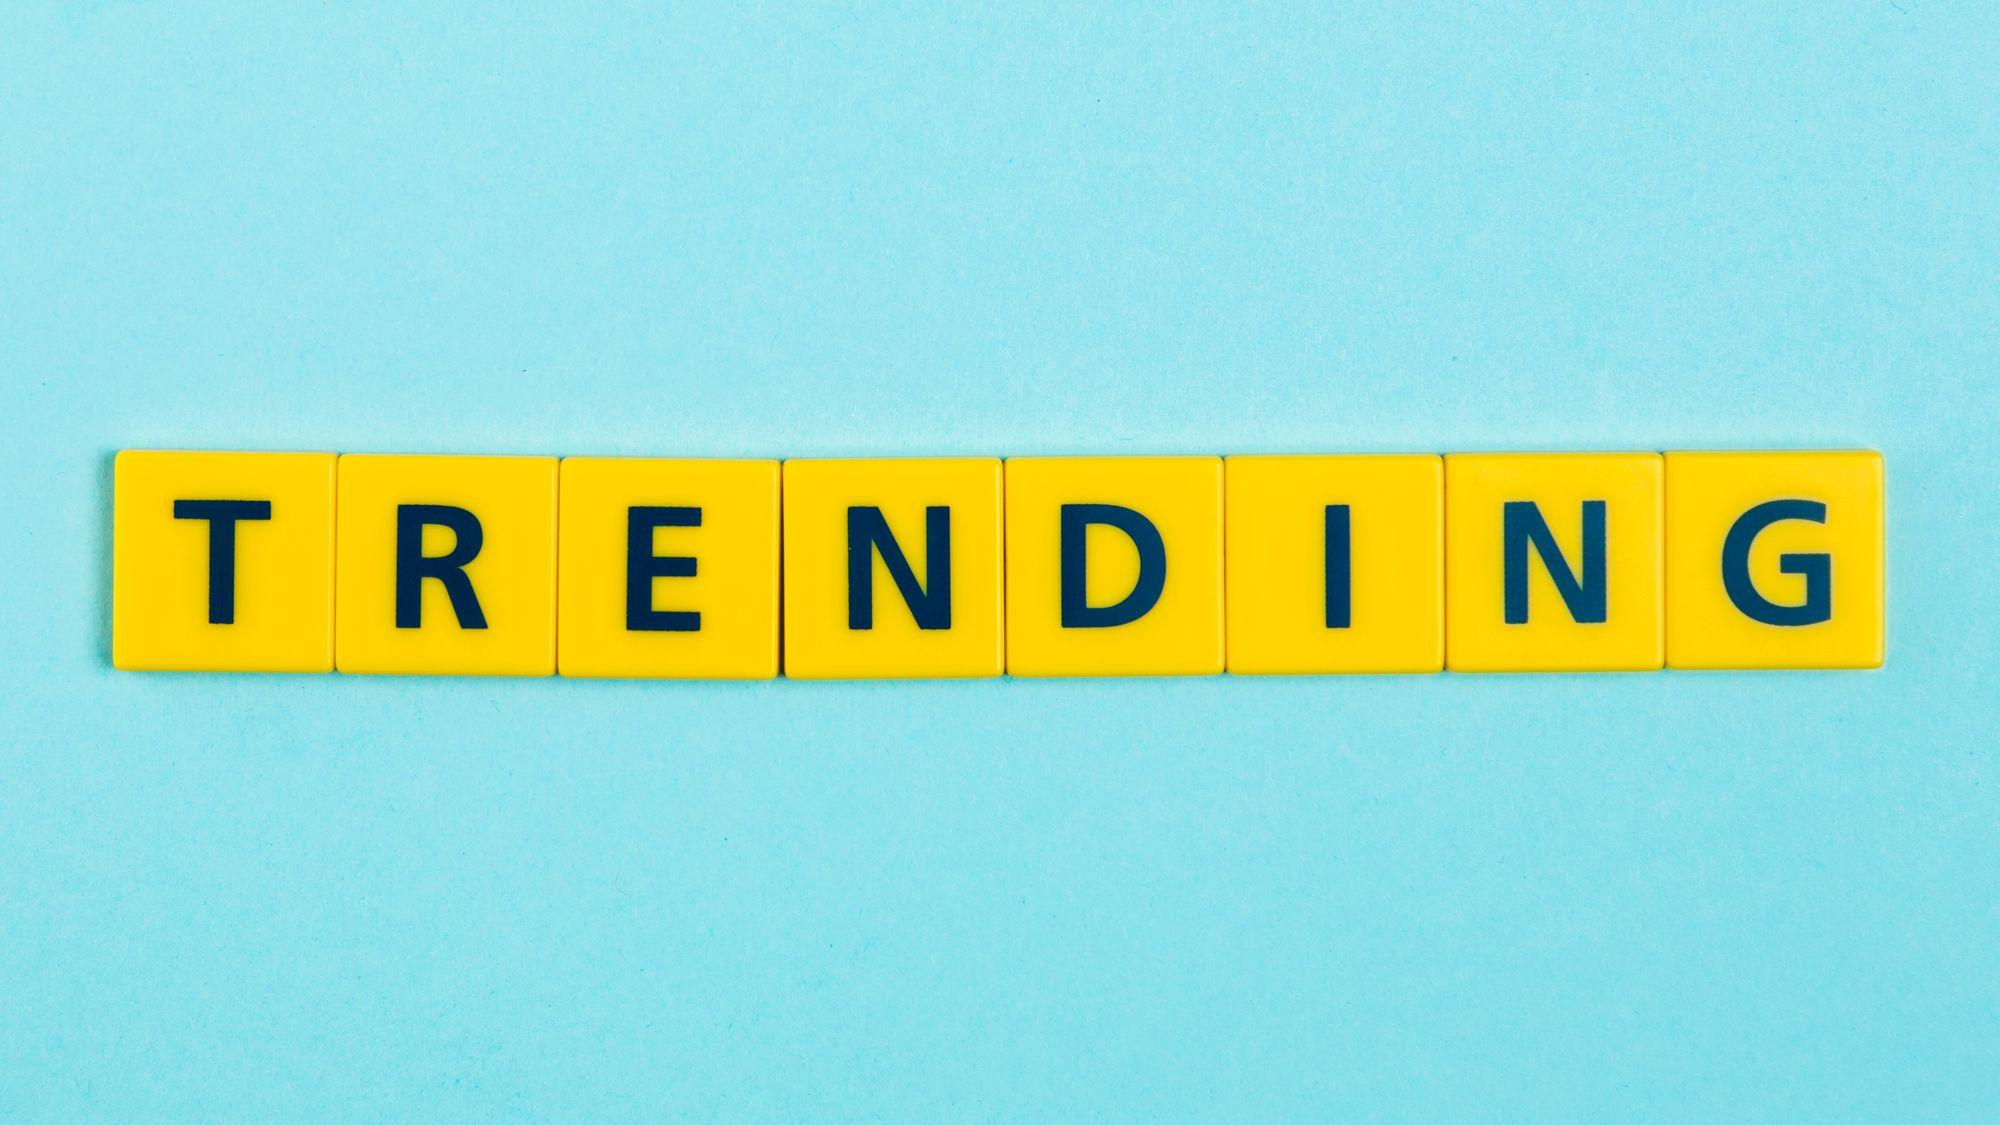 8 Digital Marketing trends to consider for 2021